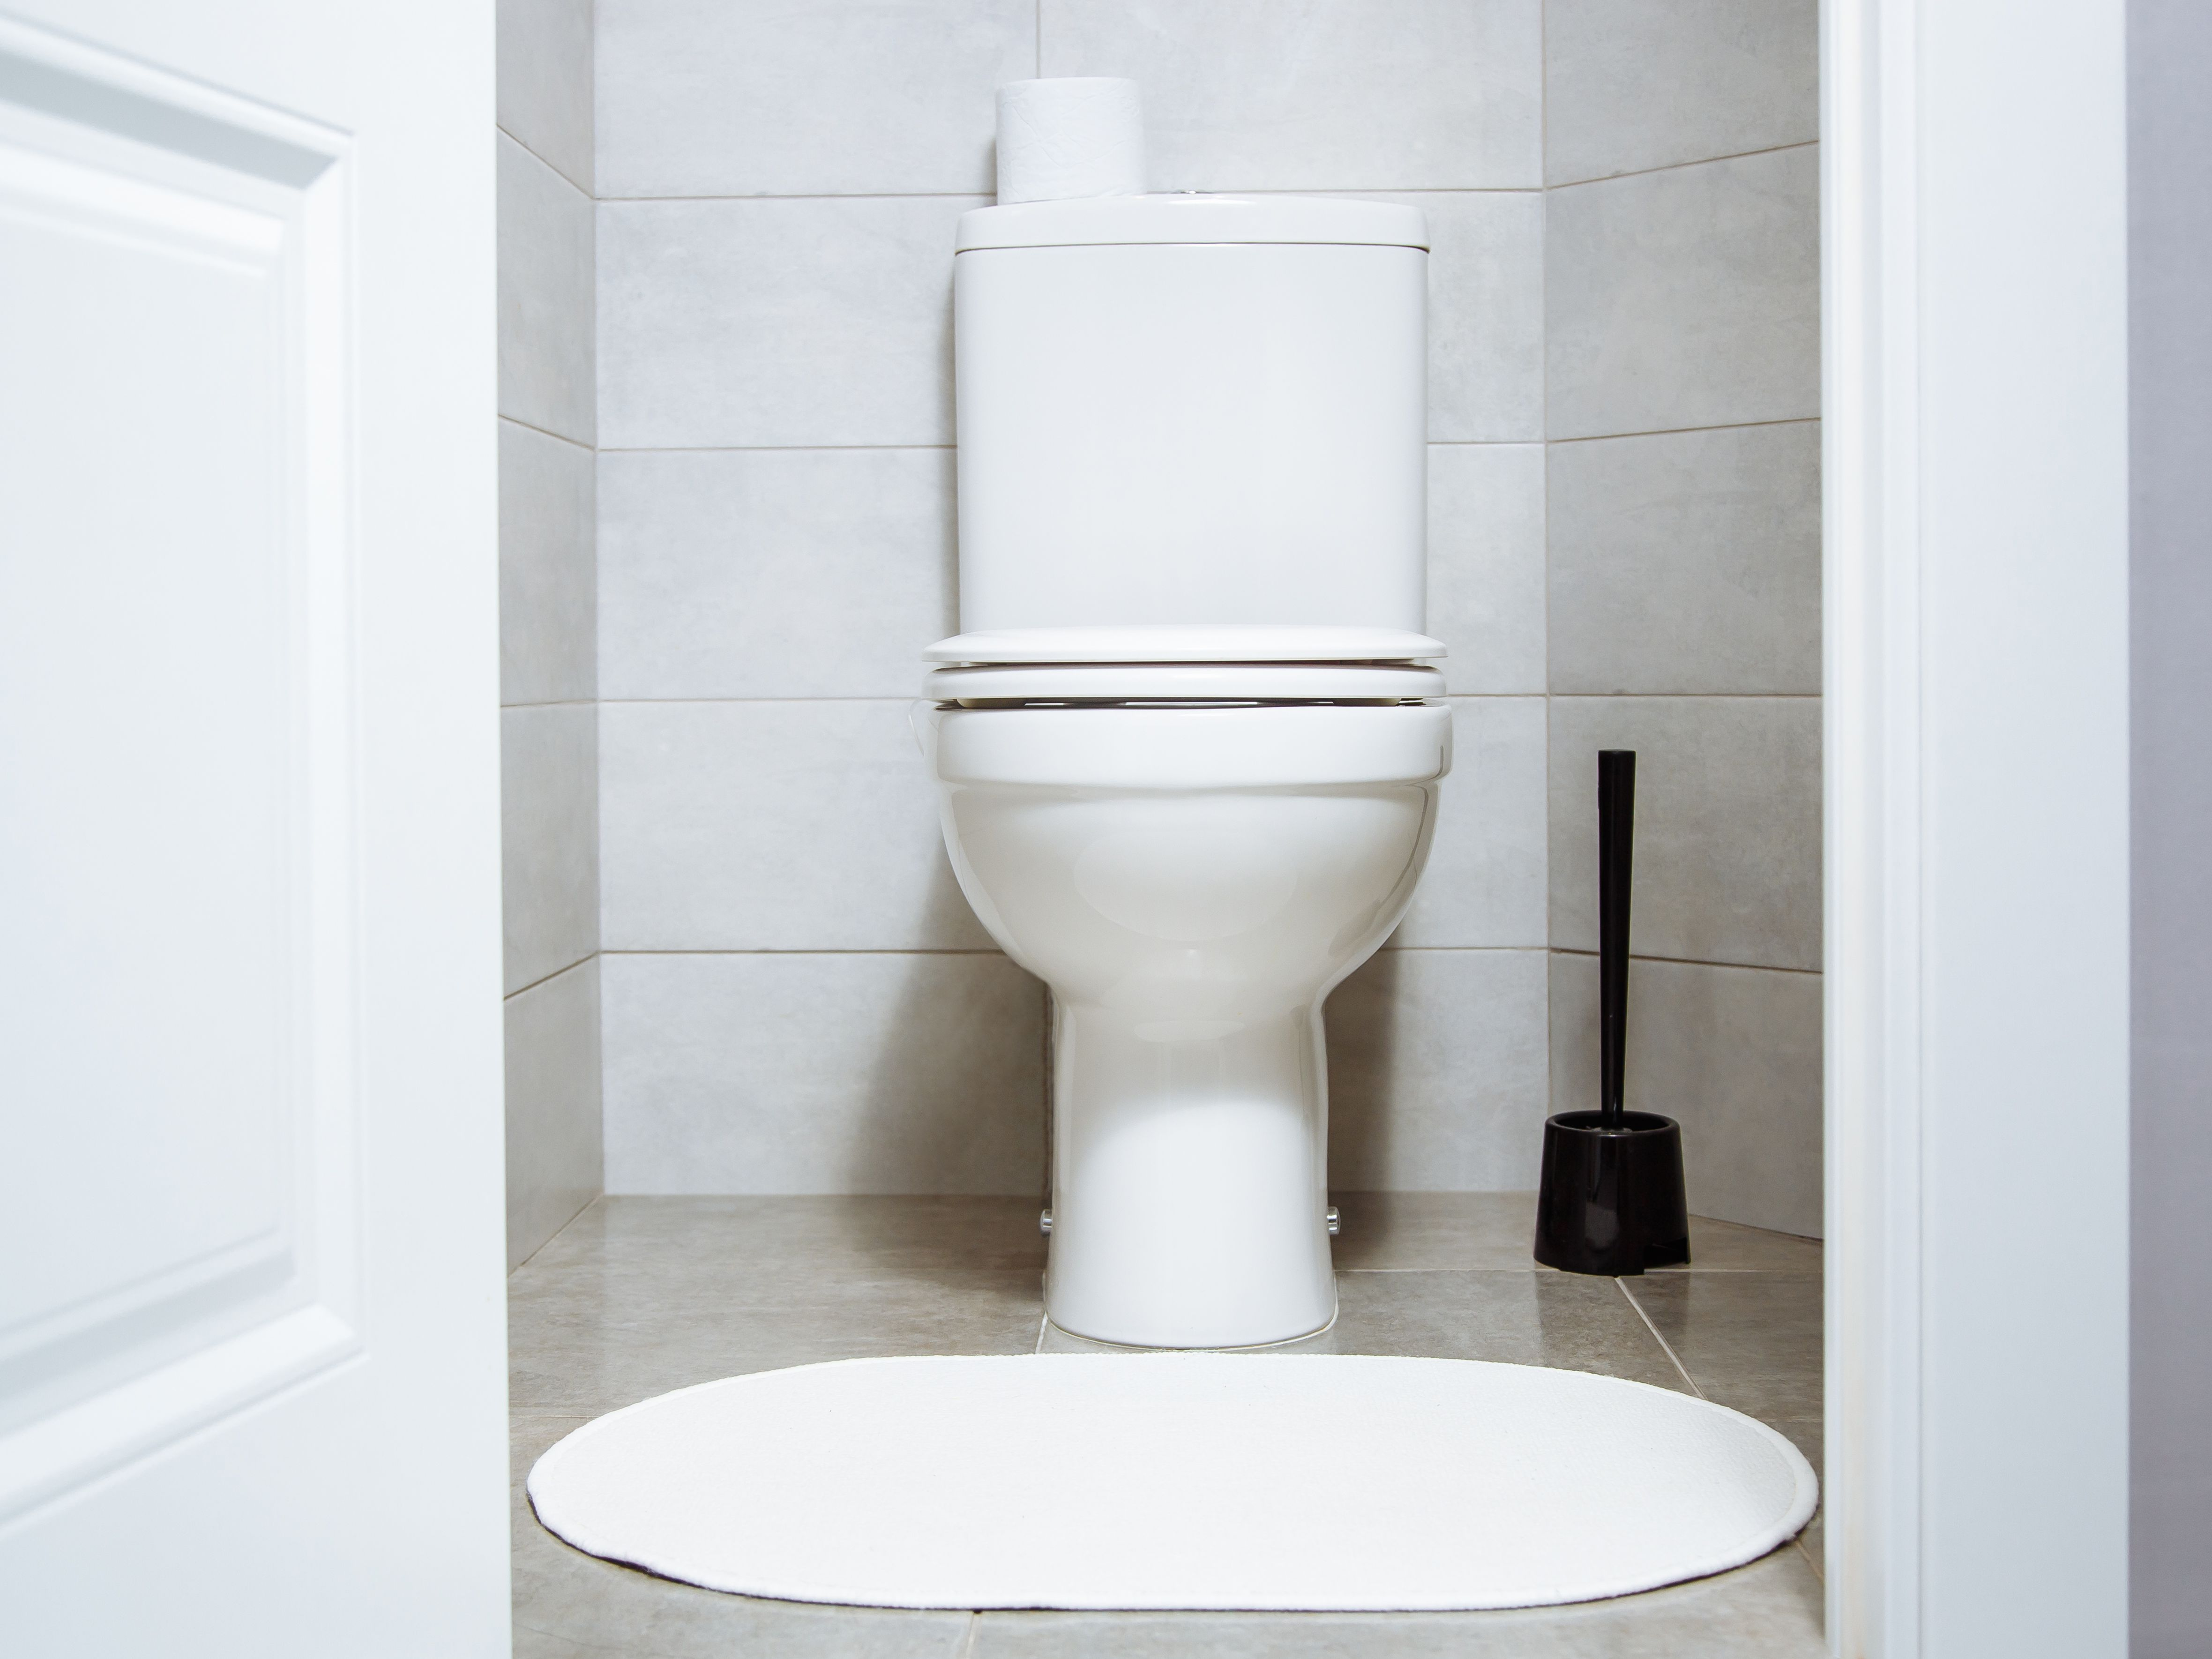 How To Install A New Toilet Flange On A Concrete Slab